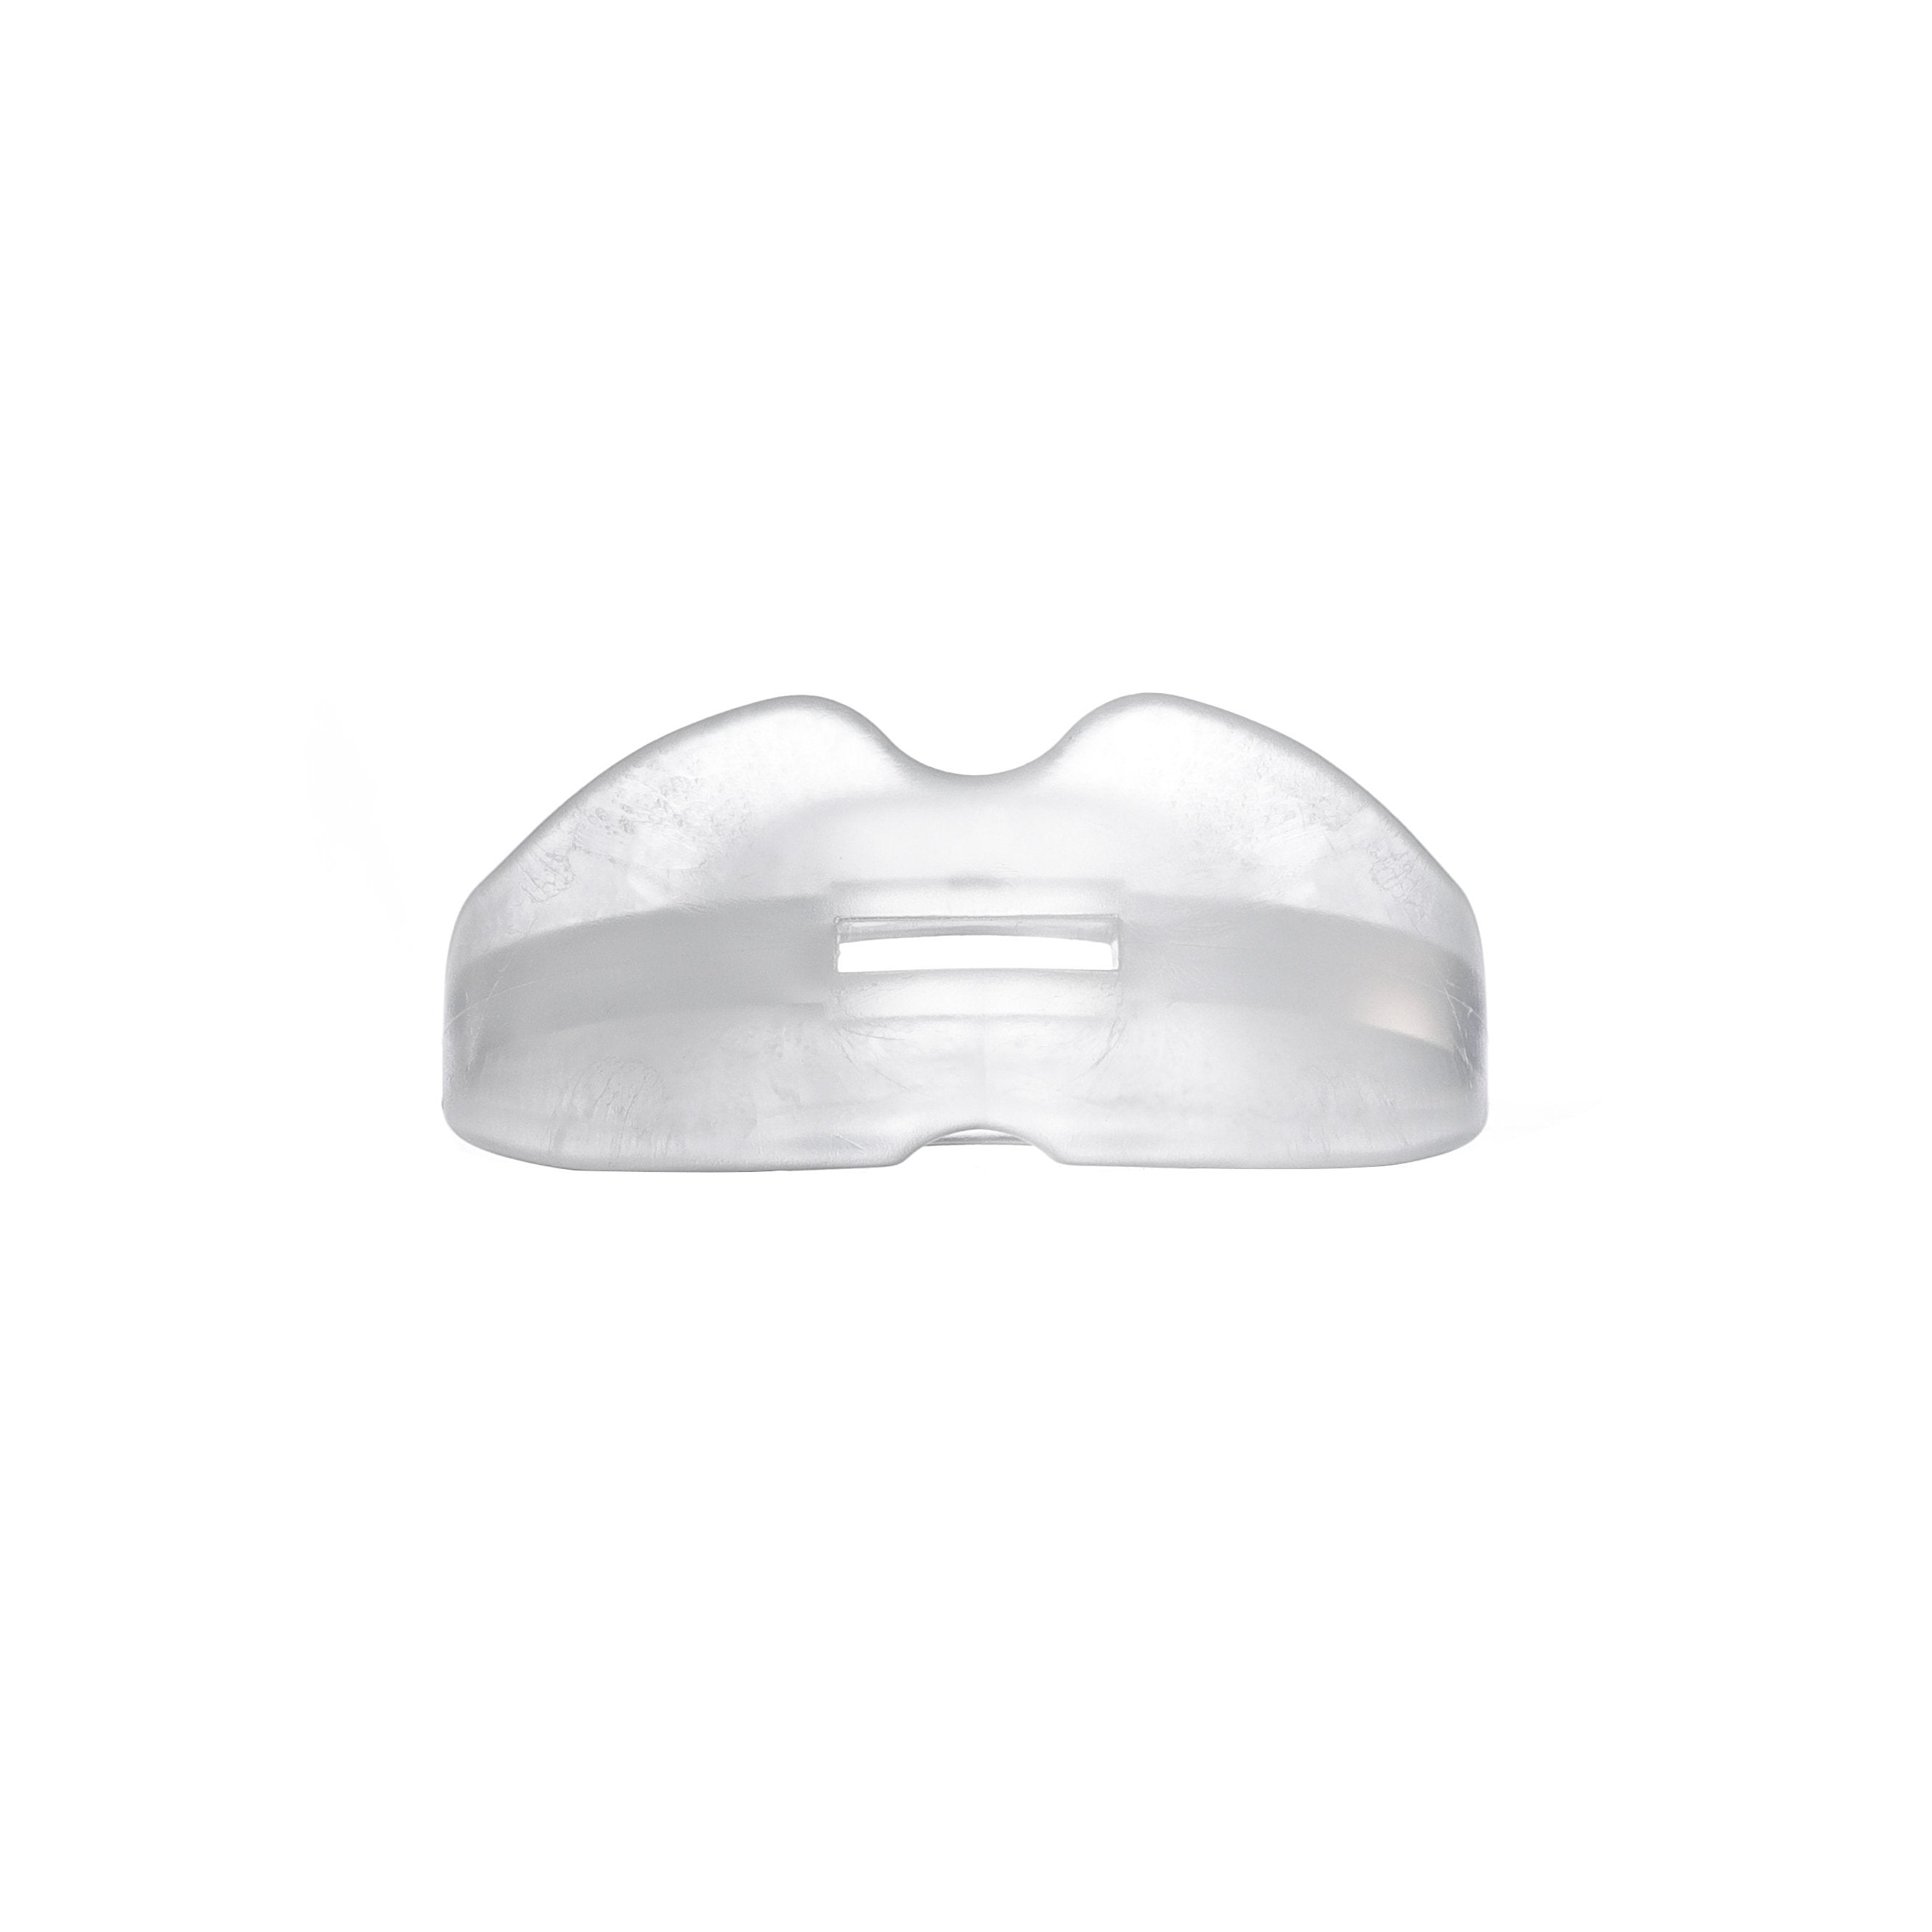 Breathe Better Mouth Guard - AllRightNights